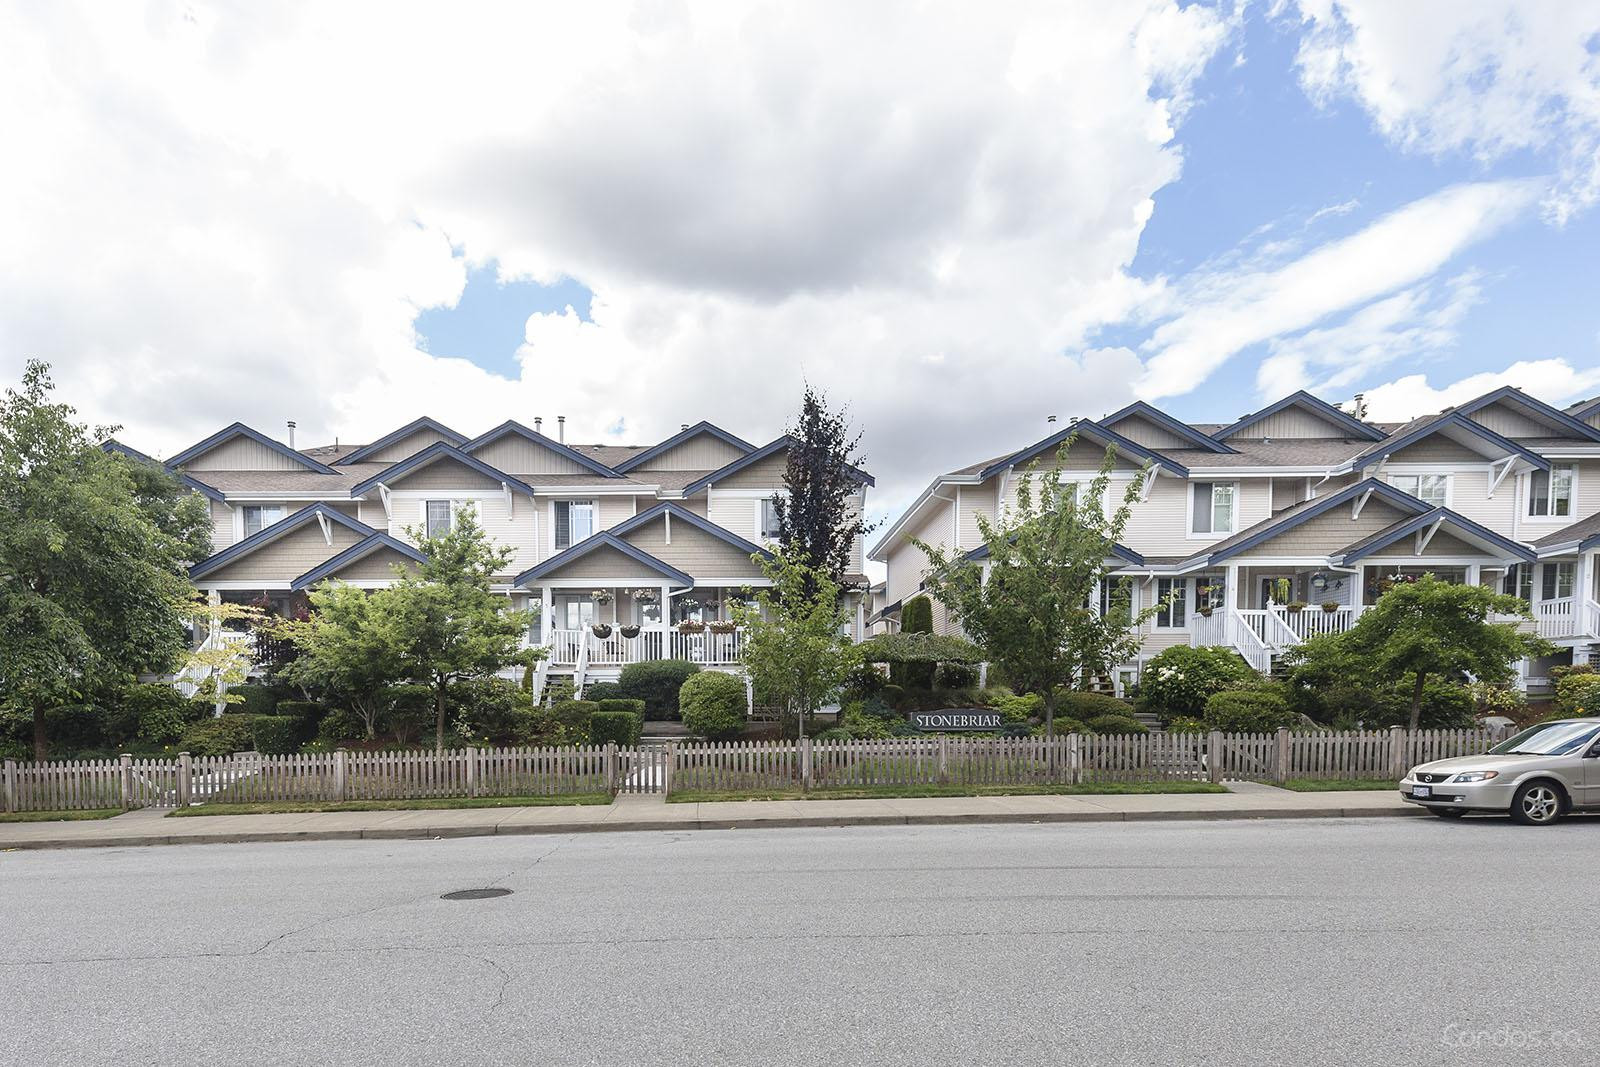 Stonebriar at 6533 121 St, Surrey 0